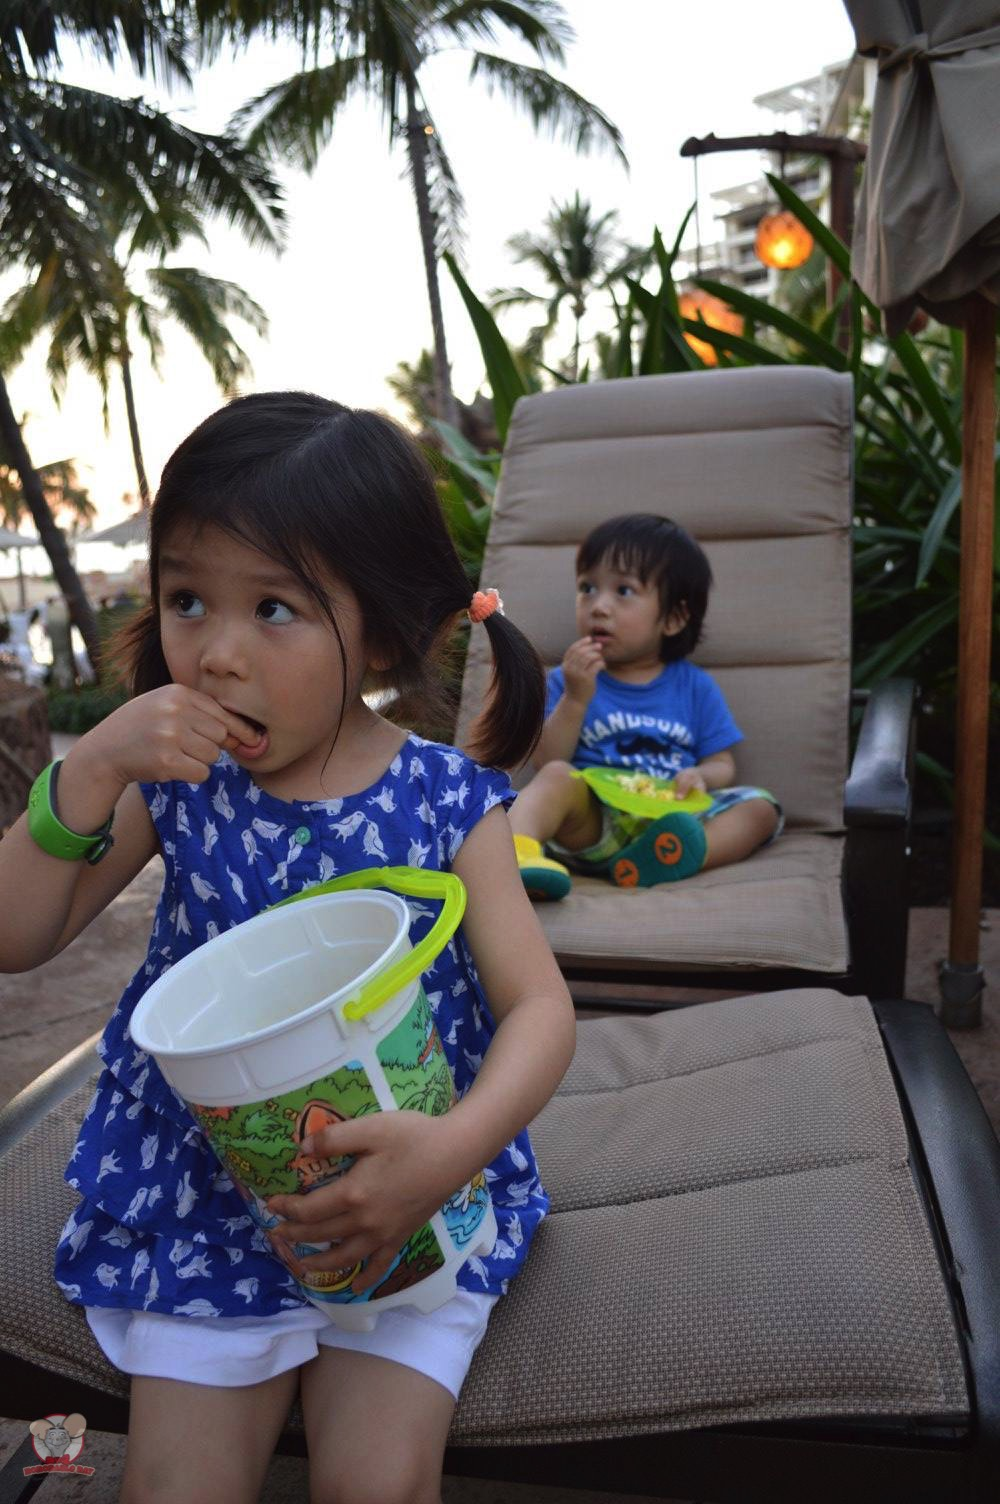 Nothing beats popcorn by the pool, waiting for the sunset